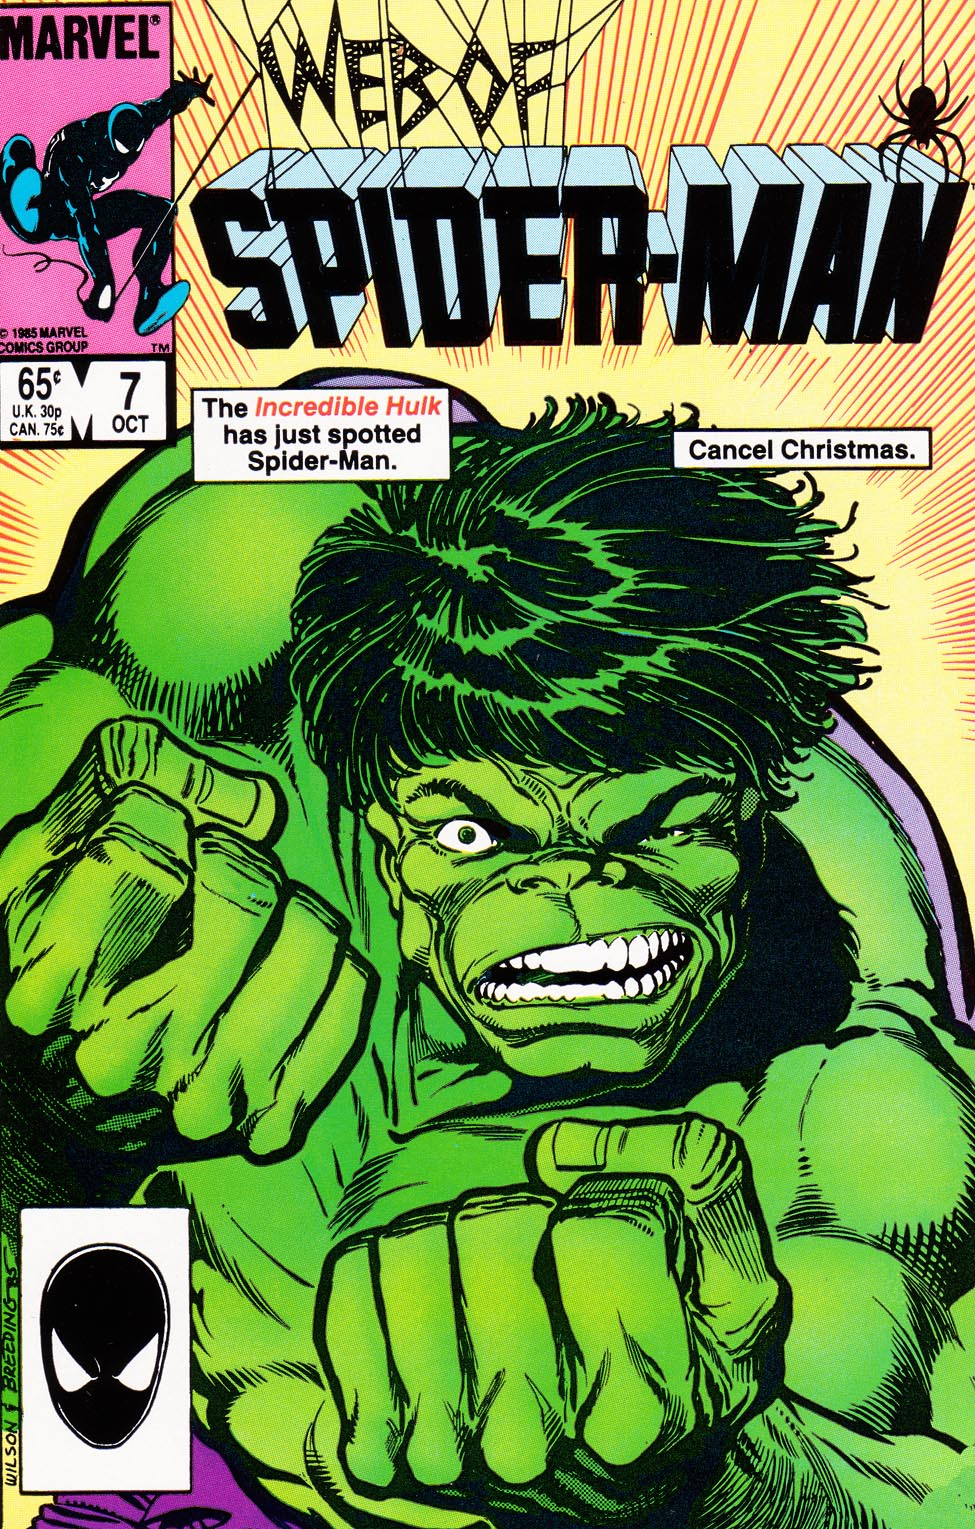 Web of Spider-Man (1985) 7 Page 1